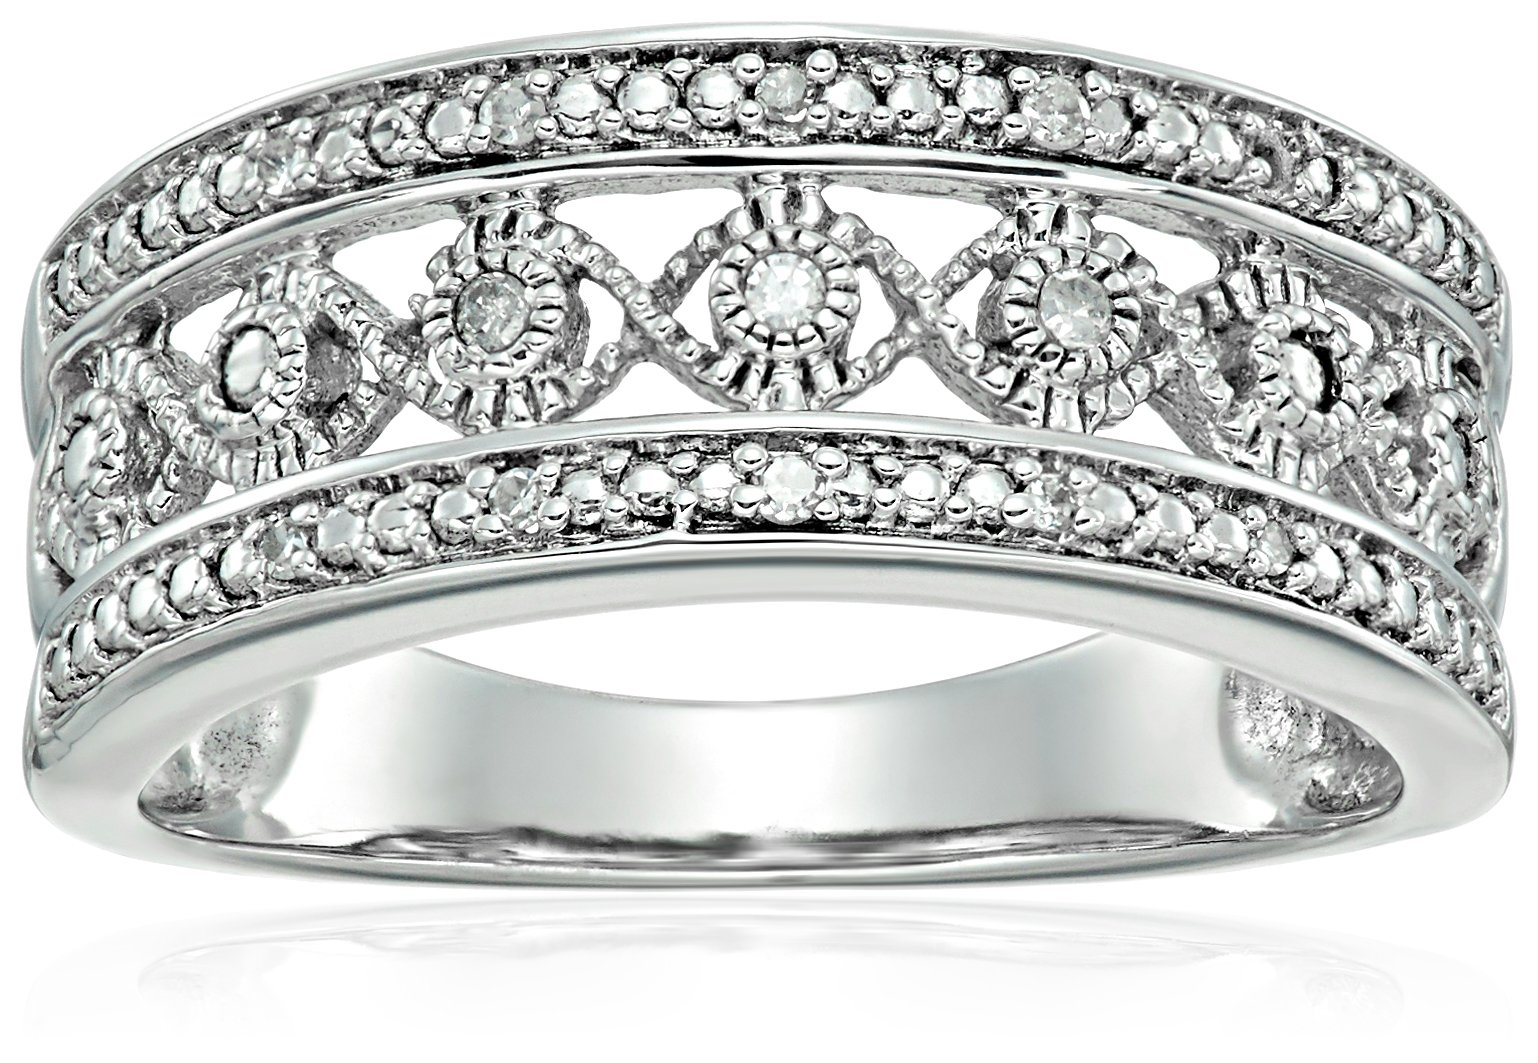 Sterling Silver Diamond Accent Anniversary Ring, Size 7